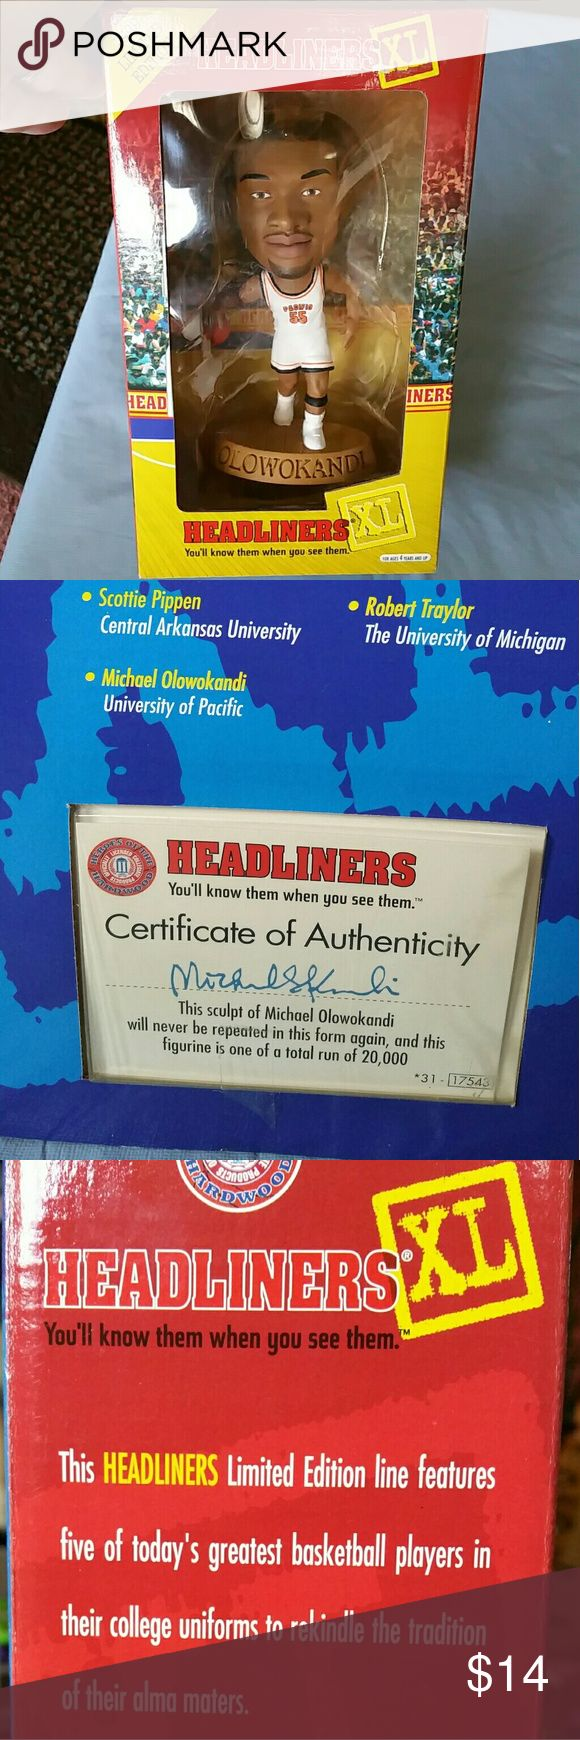 1999 XL BASKETBALL HEADLINER 1999 LIMITED EDITION XL BASKETBALL HEADLINER WITH CERTIFICATE OF AUTHENTICITY MICHAEL OLOWOKANDI... nba Other